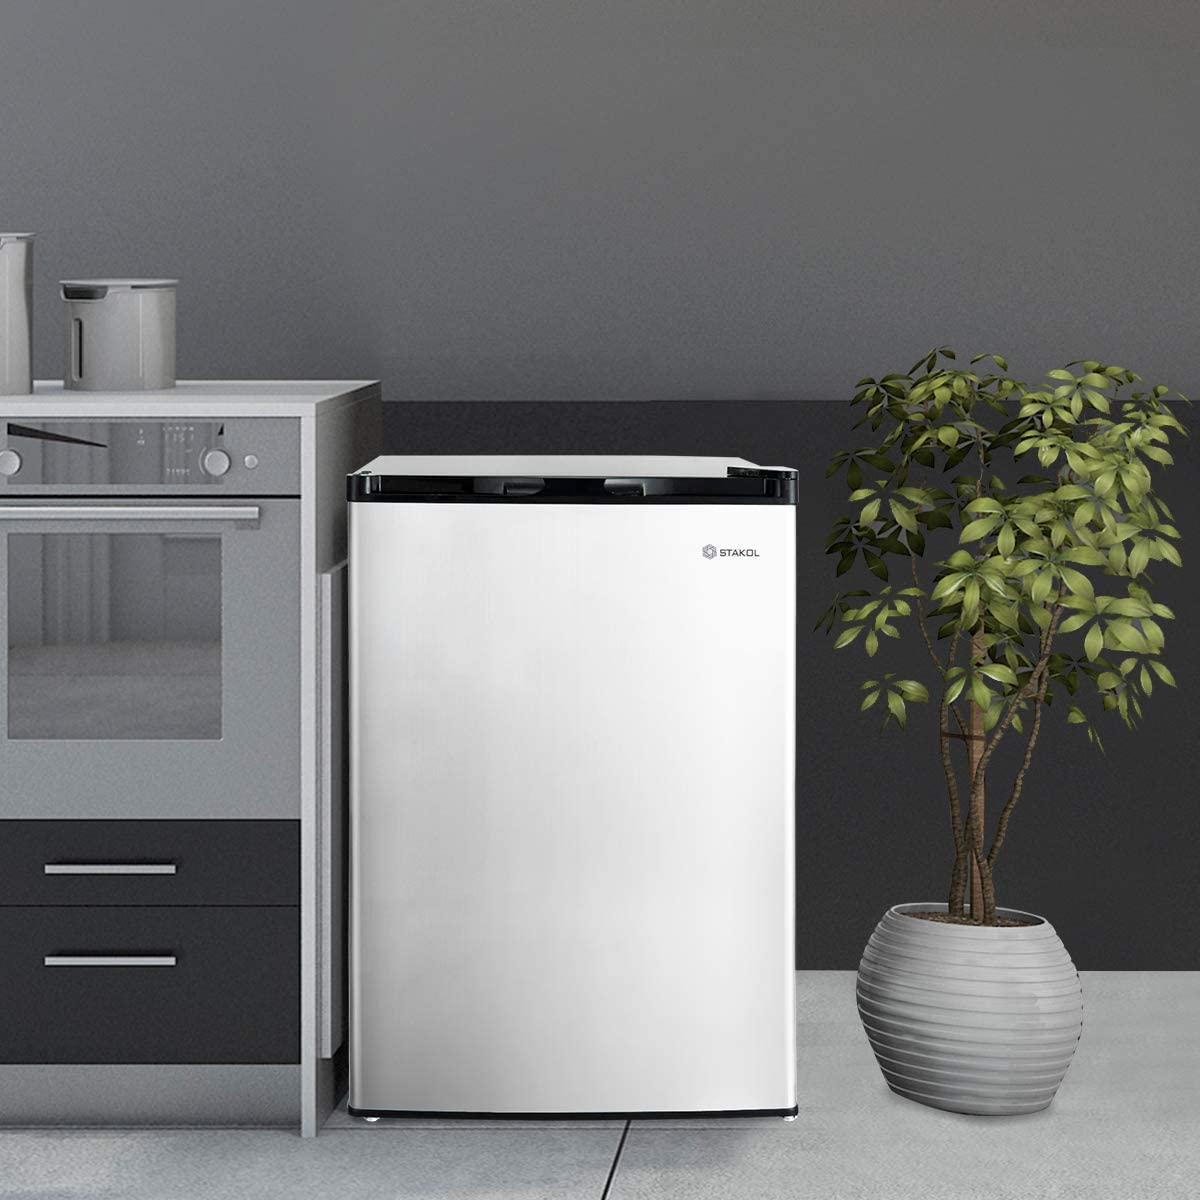 Mechanical Control Freezer with Stainless Steel Door for Home Hotel Apartment Upright Freezer Freestanding Mini Freezer with Single Reversible Stainless Steel Door with Adjustable Leg